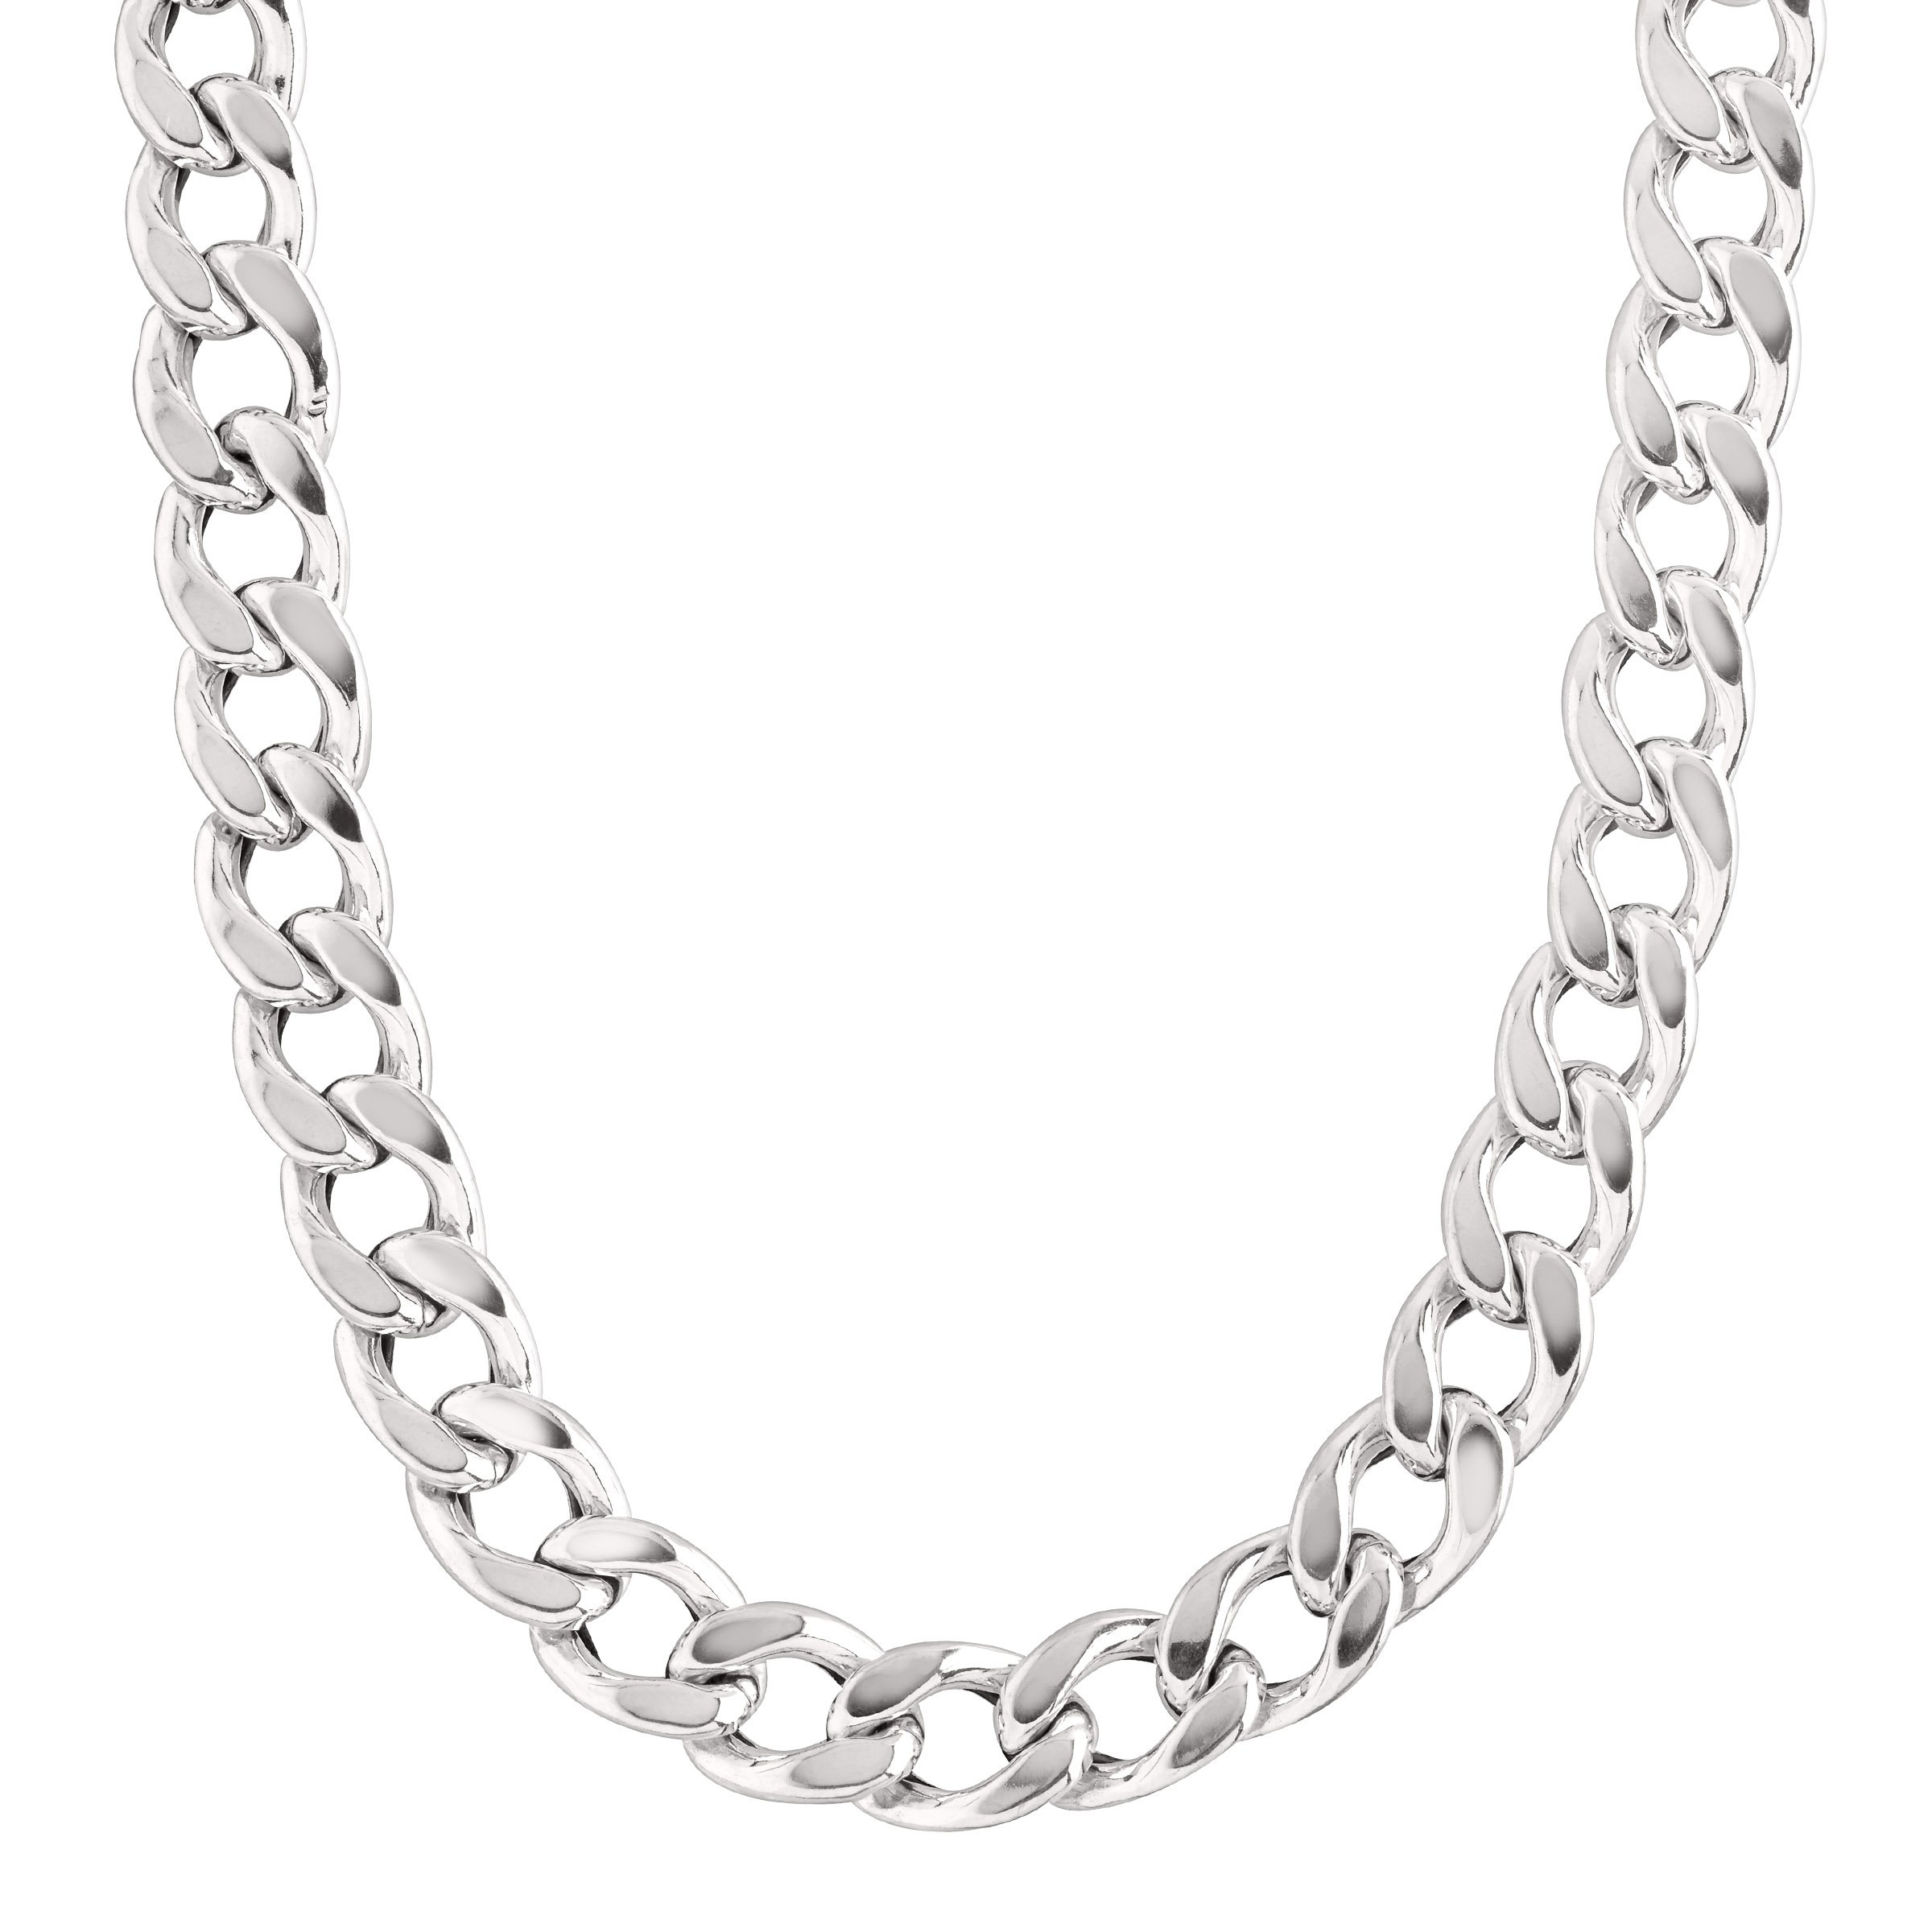 Large Sterling Silver Link Chain Necklace For Women 18